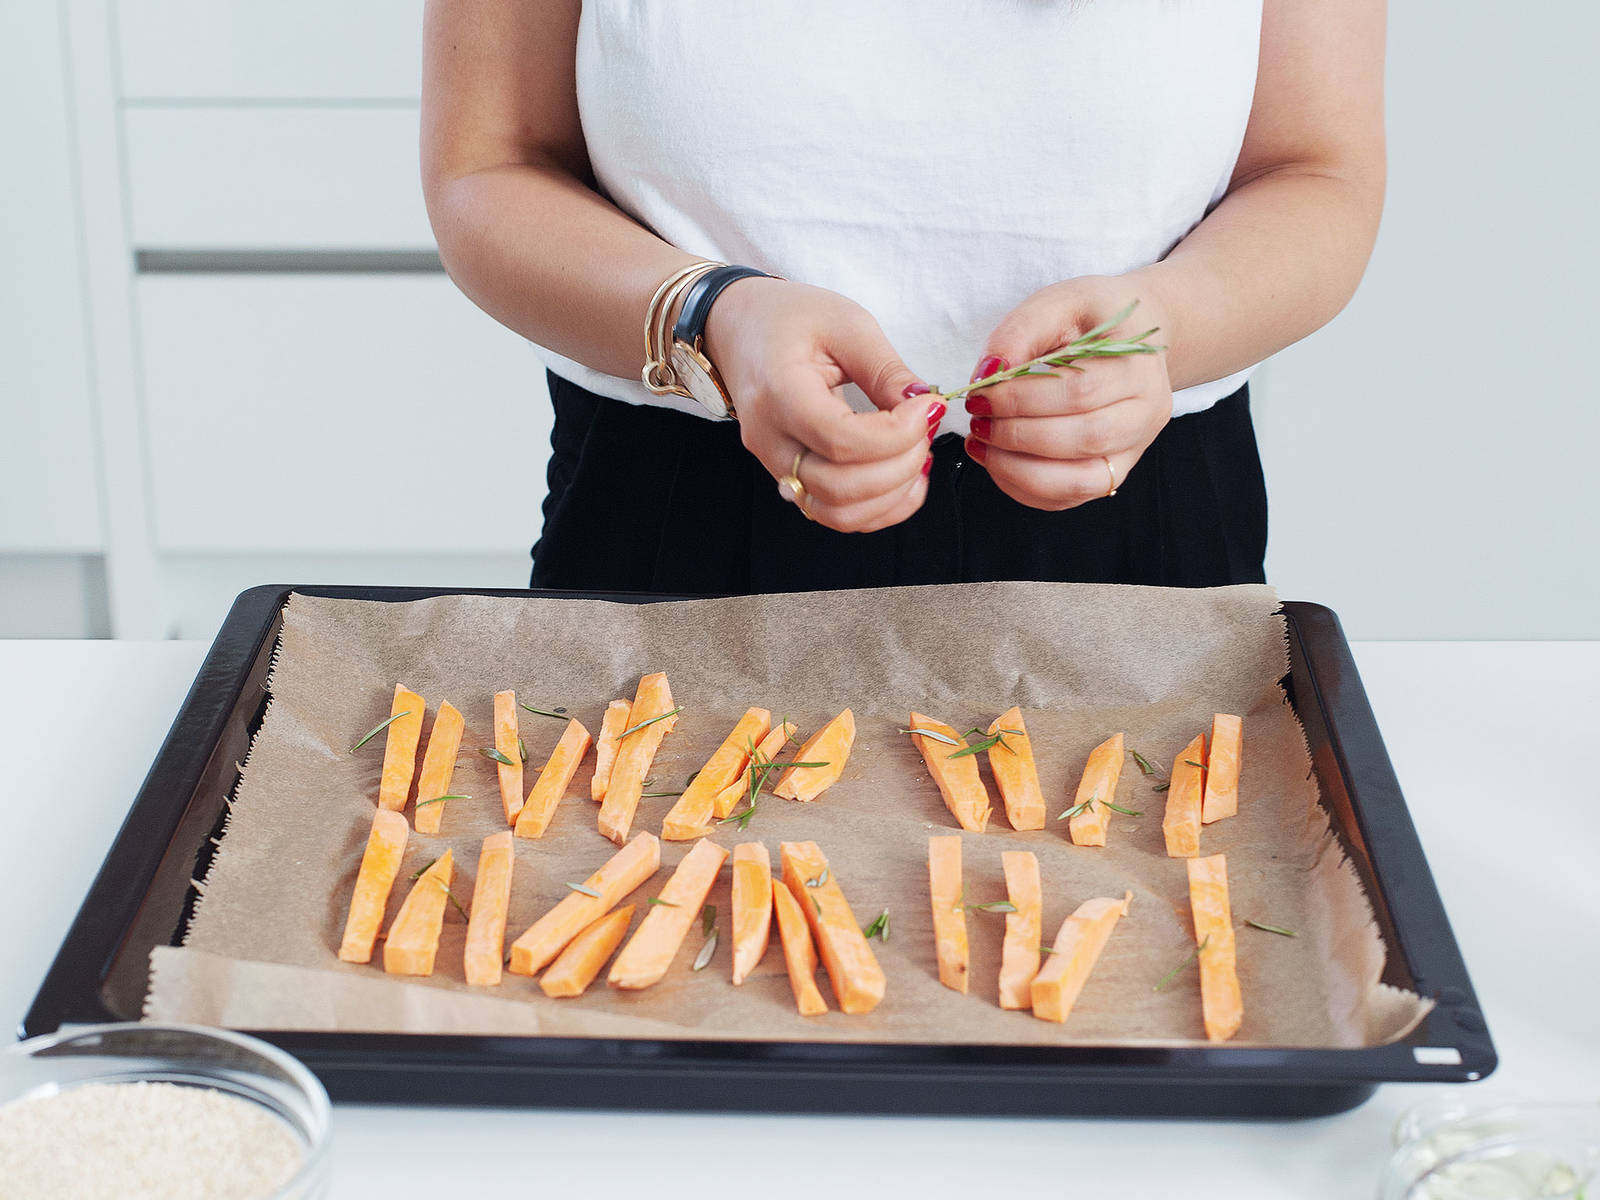 Preheat oven to 200°C/400°F. Peel sweet potato and cut into sticks. Chop rosemary. Transfer potatoes to a parchment-lined baking tray. Season with salt, top with rosemary, and drizzle with olive oil. Bake for approx. 30 min.